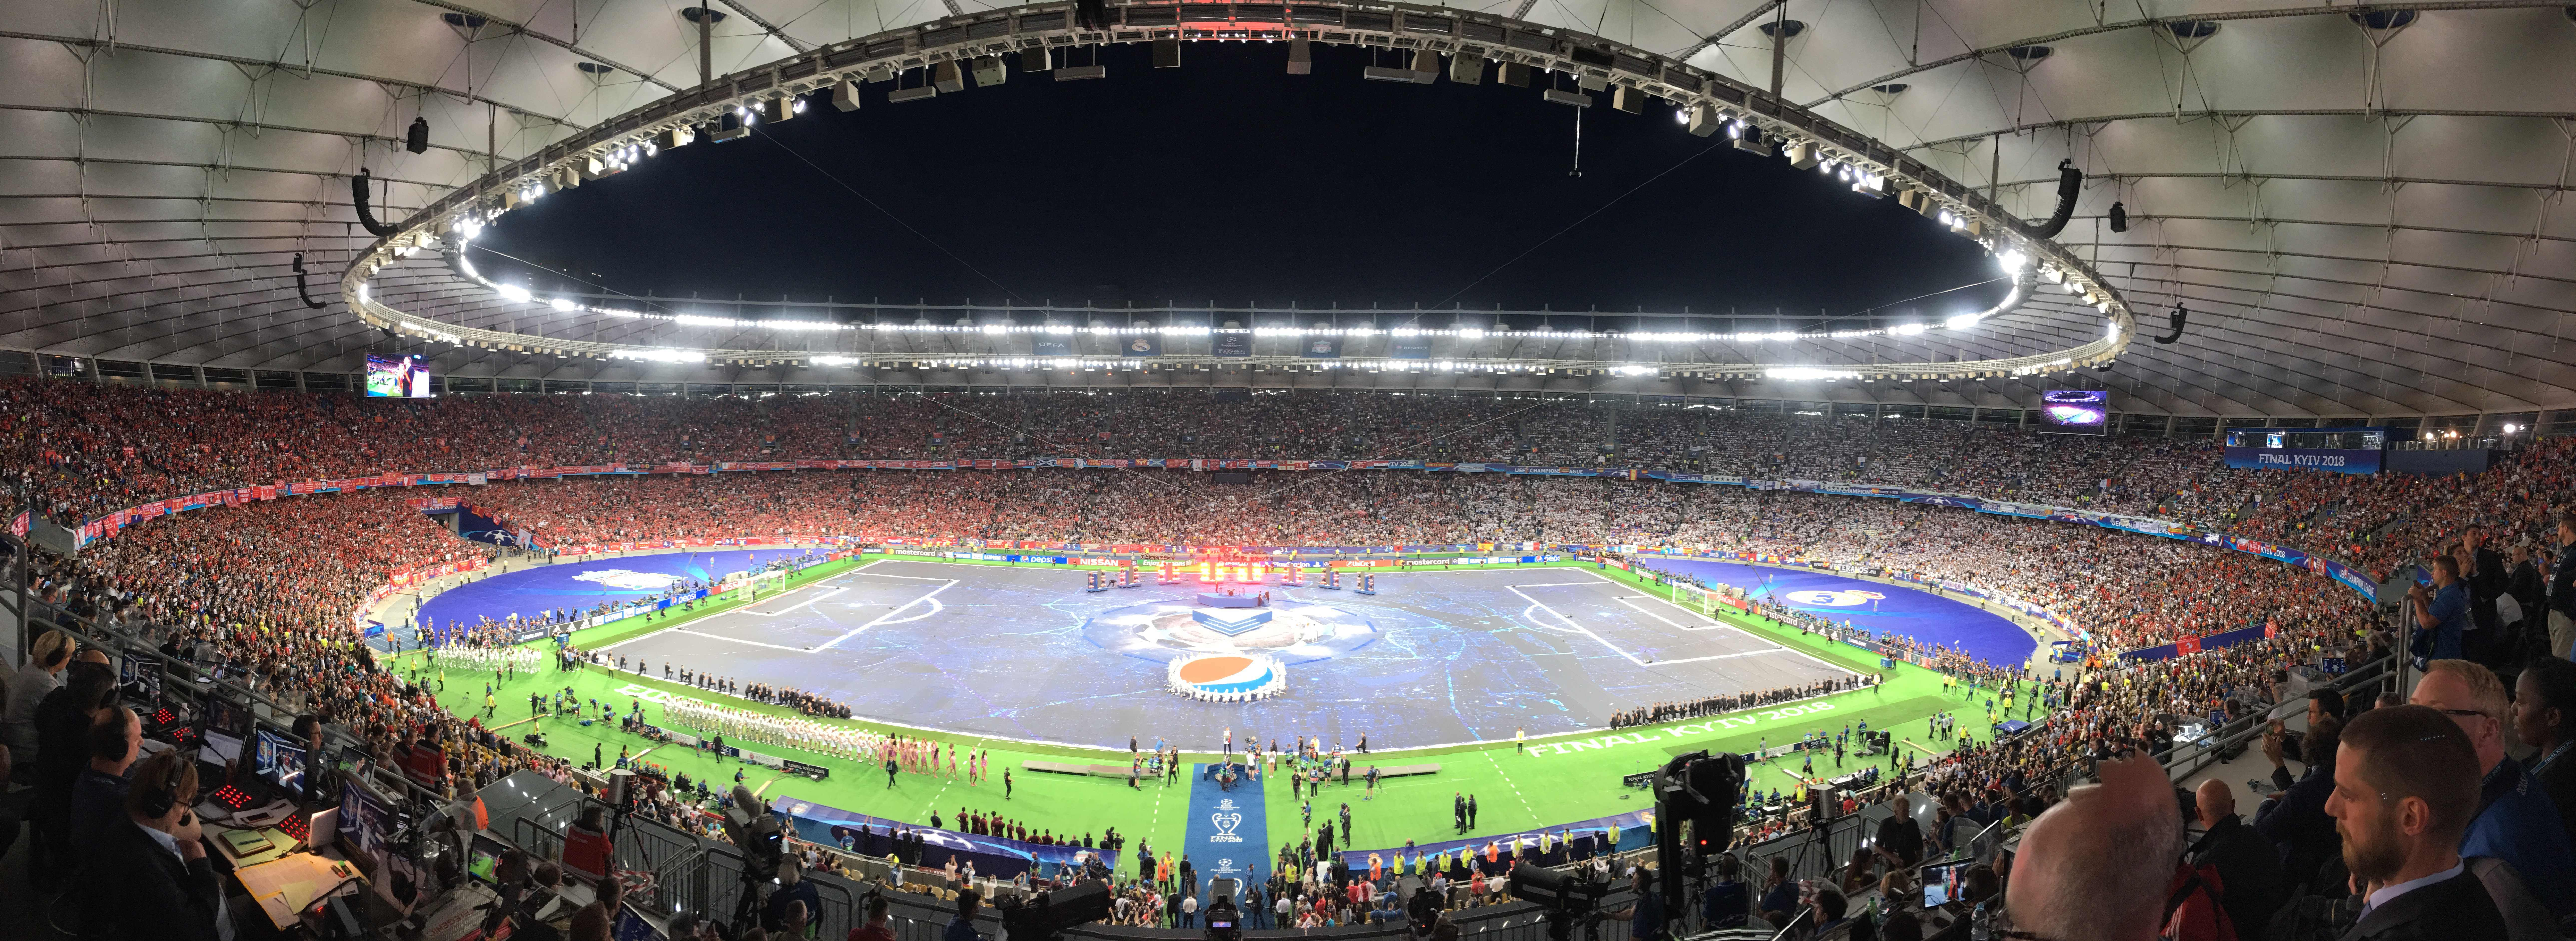 View of the stadium taken prior to the UEFA Champions League final football match between Liverpool and Real Madrid at the Olympic Stadium in Kiev, Ukraine on May 26, 2018. (Photo by Sergei SUPINSKY / AFP)        (Photo credit should read SERGEI SUPINSKY/AFP via Getty Images)